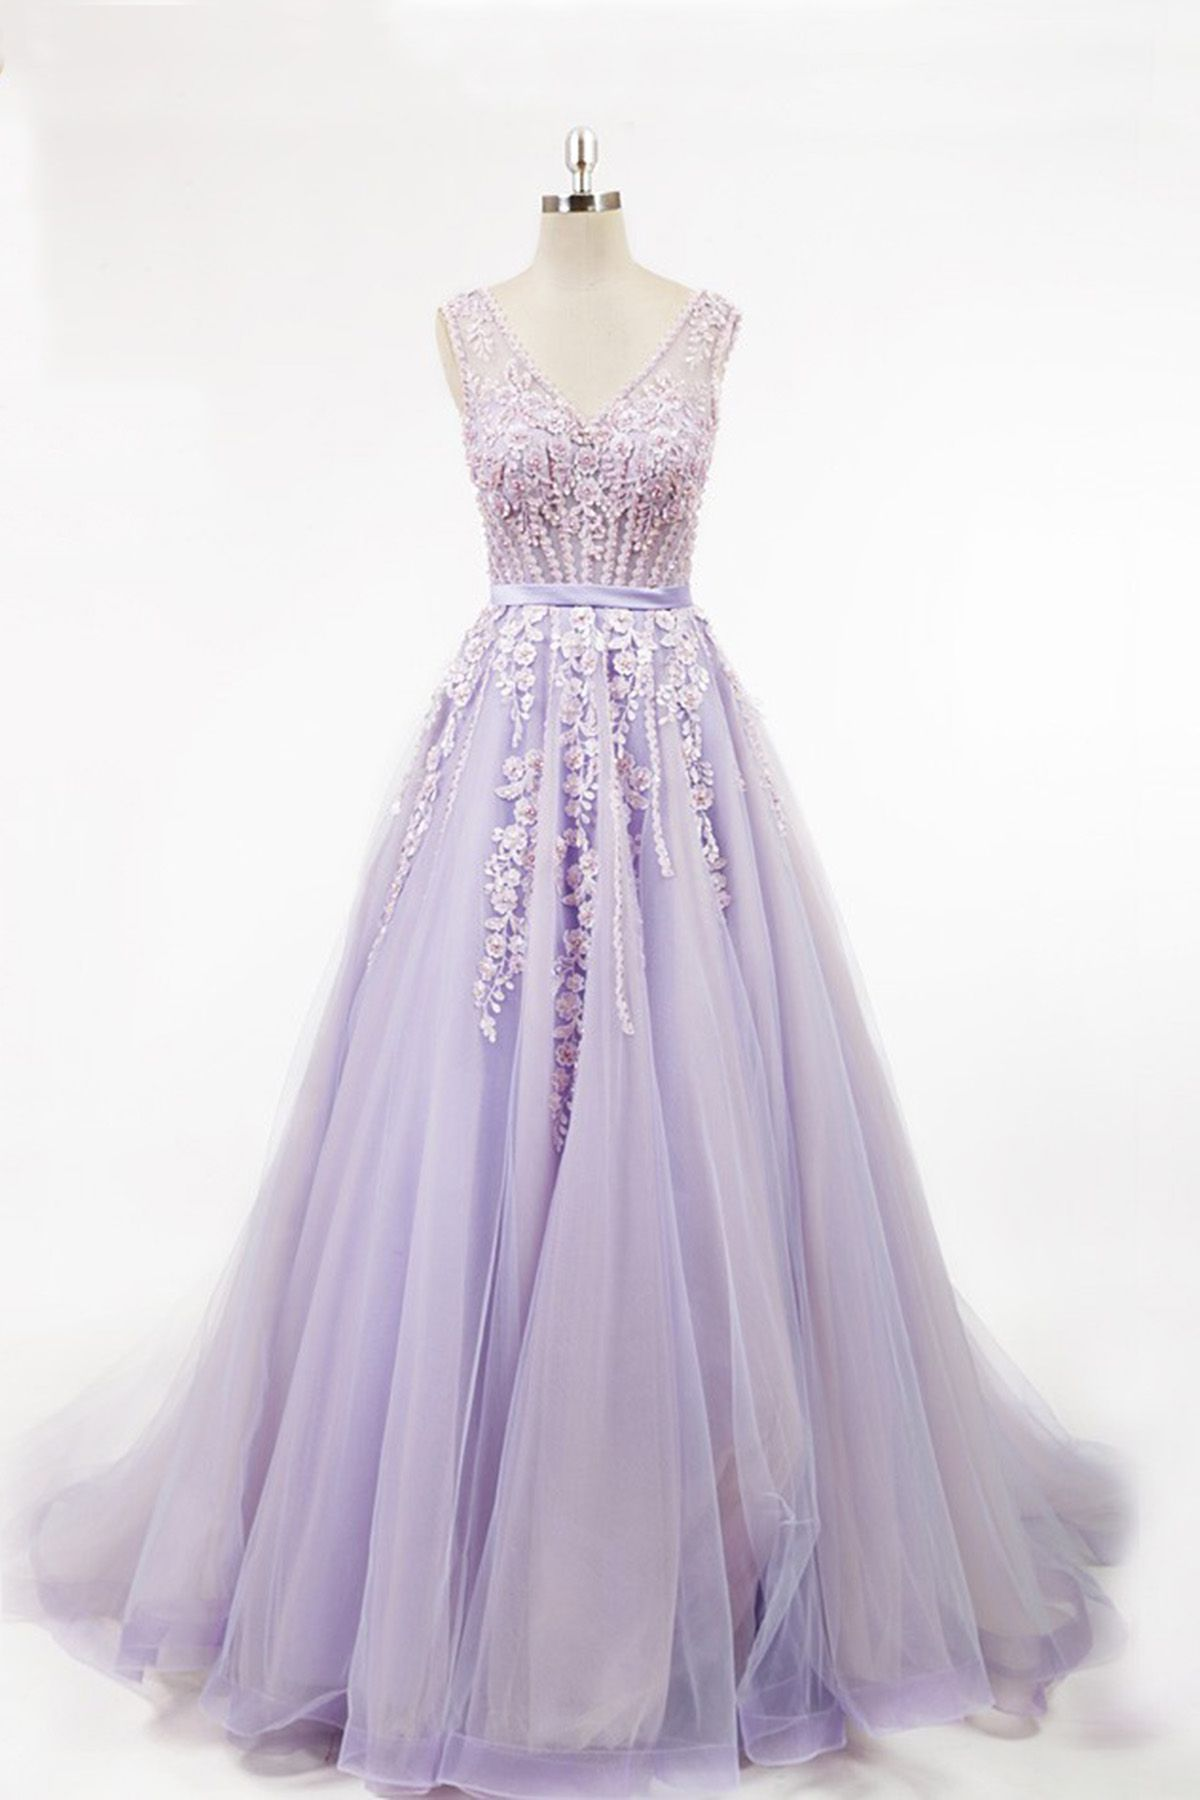 c6790395eca Beautiful lavender tulle prom dress with 3D flowers